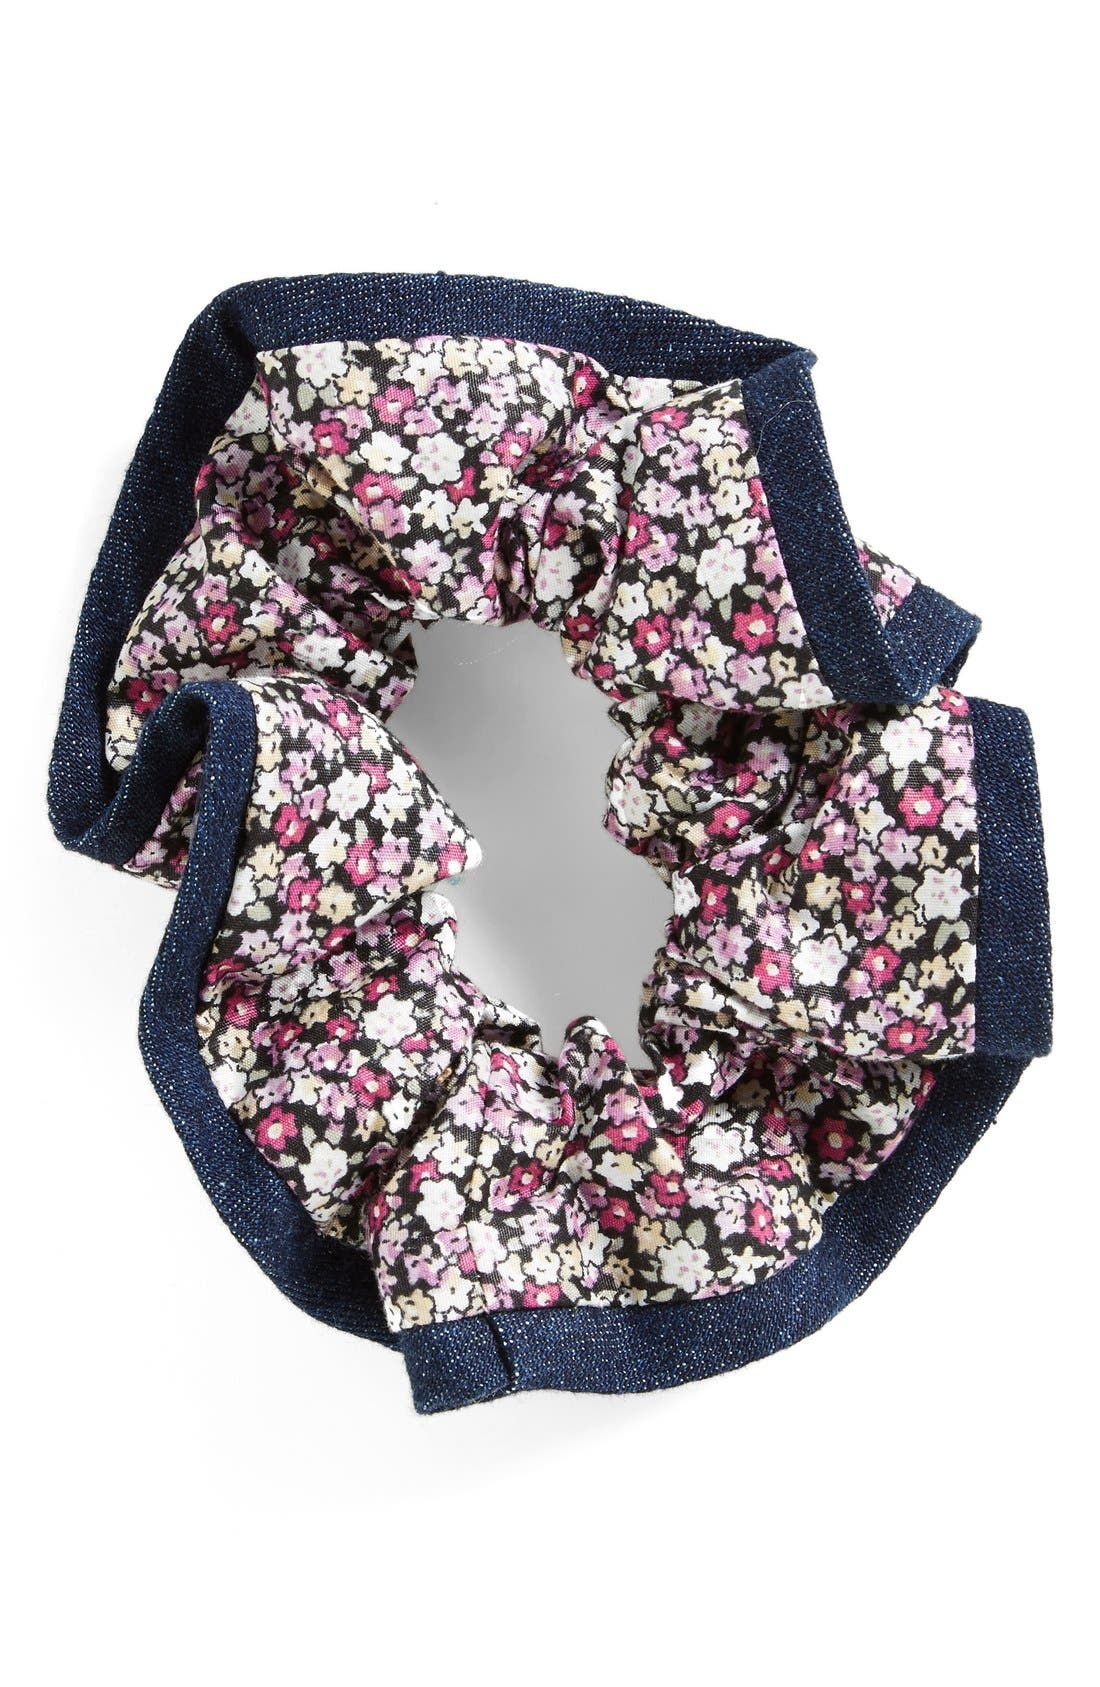 L. ERICKSON Ribbon Edge Silk Scrunchie